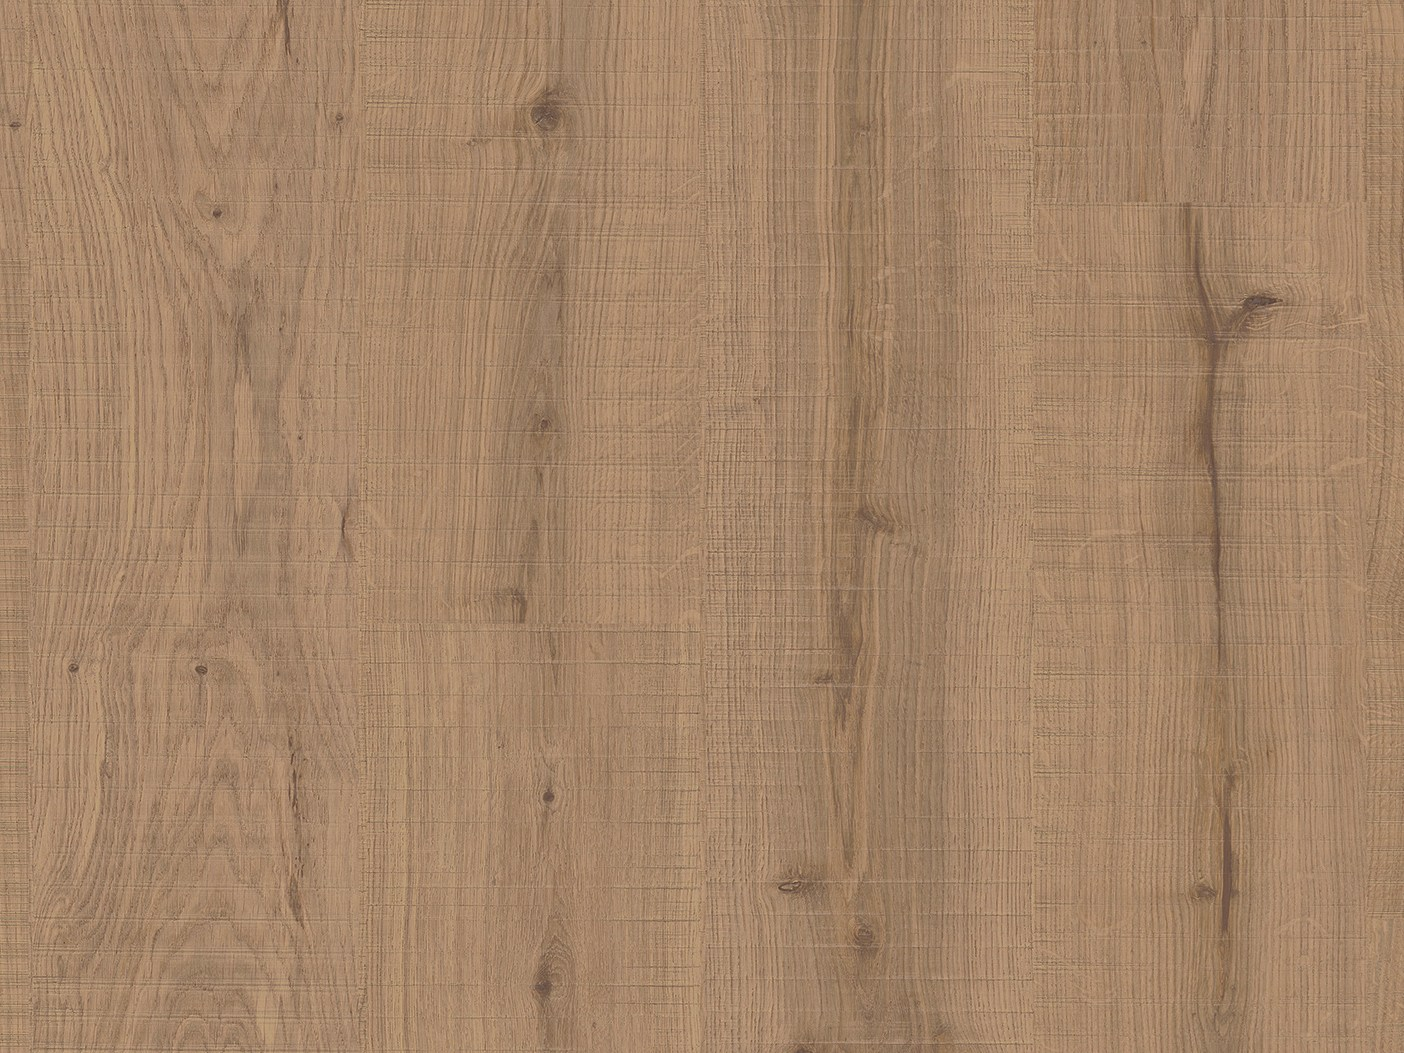 Pergo laminate flooring quality 28 images l0323 for Quality laminate flooring